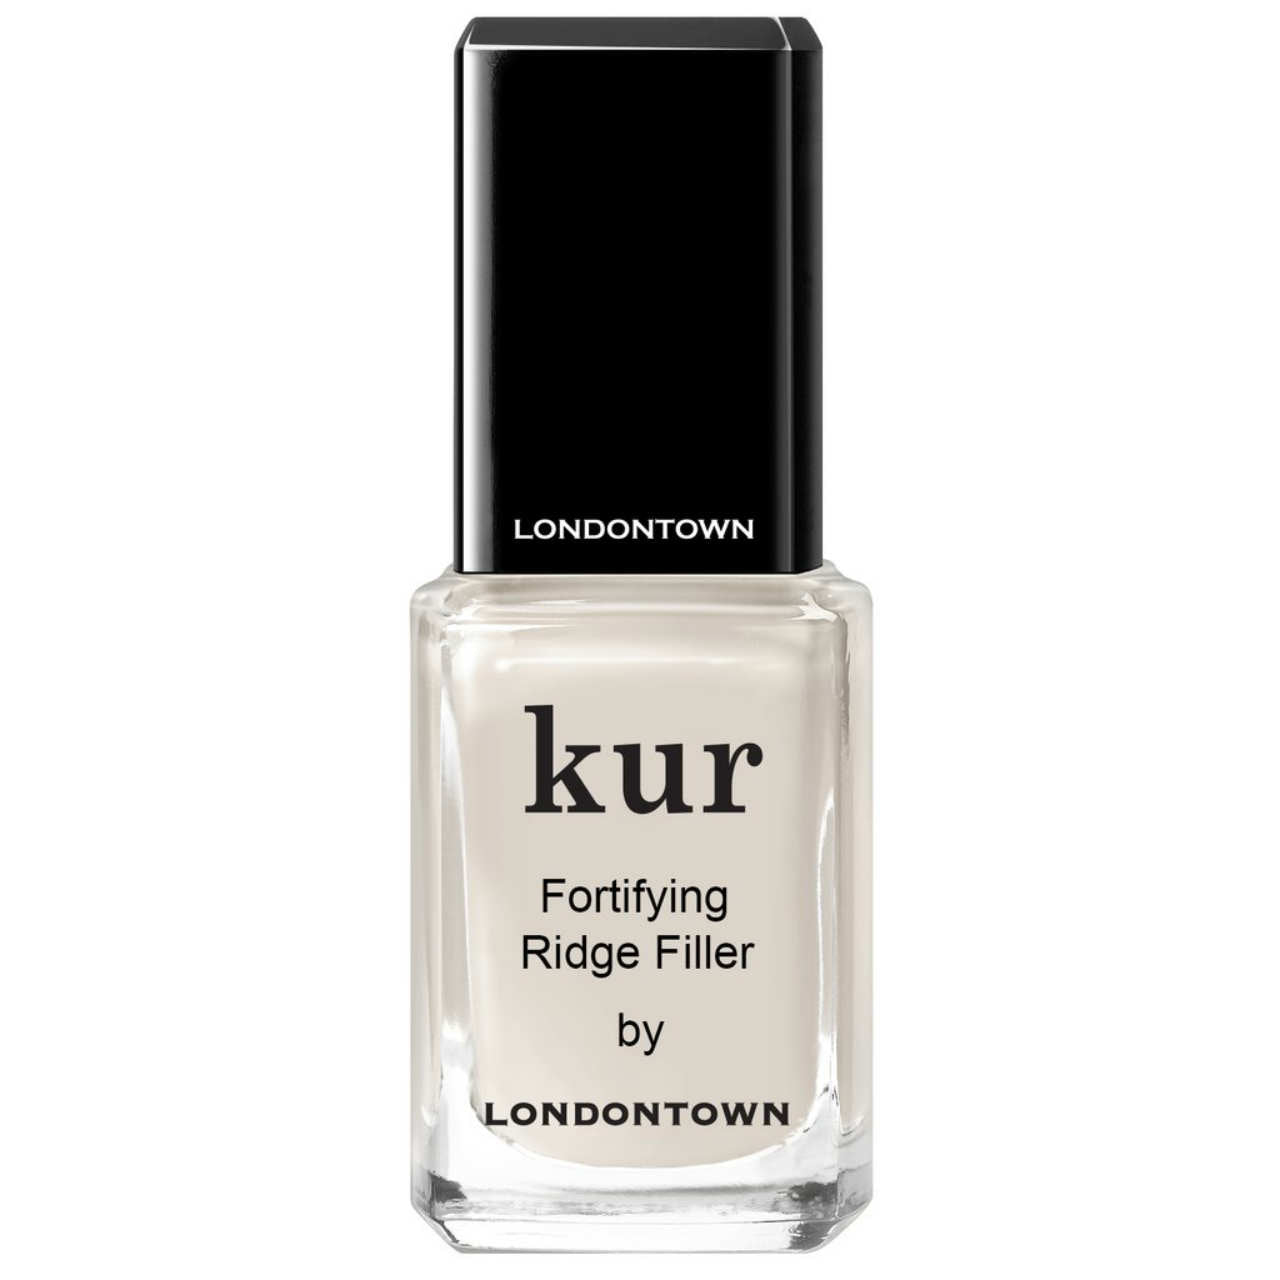 LONDONTOWN Kur Fortifying Ridge Filler with Black Cap